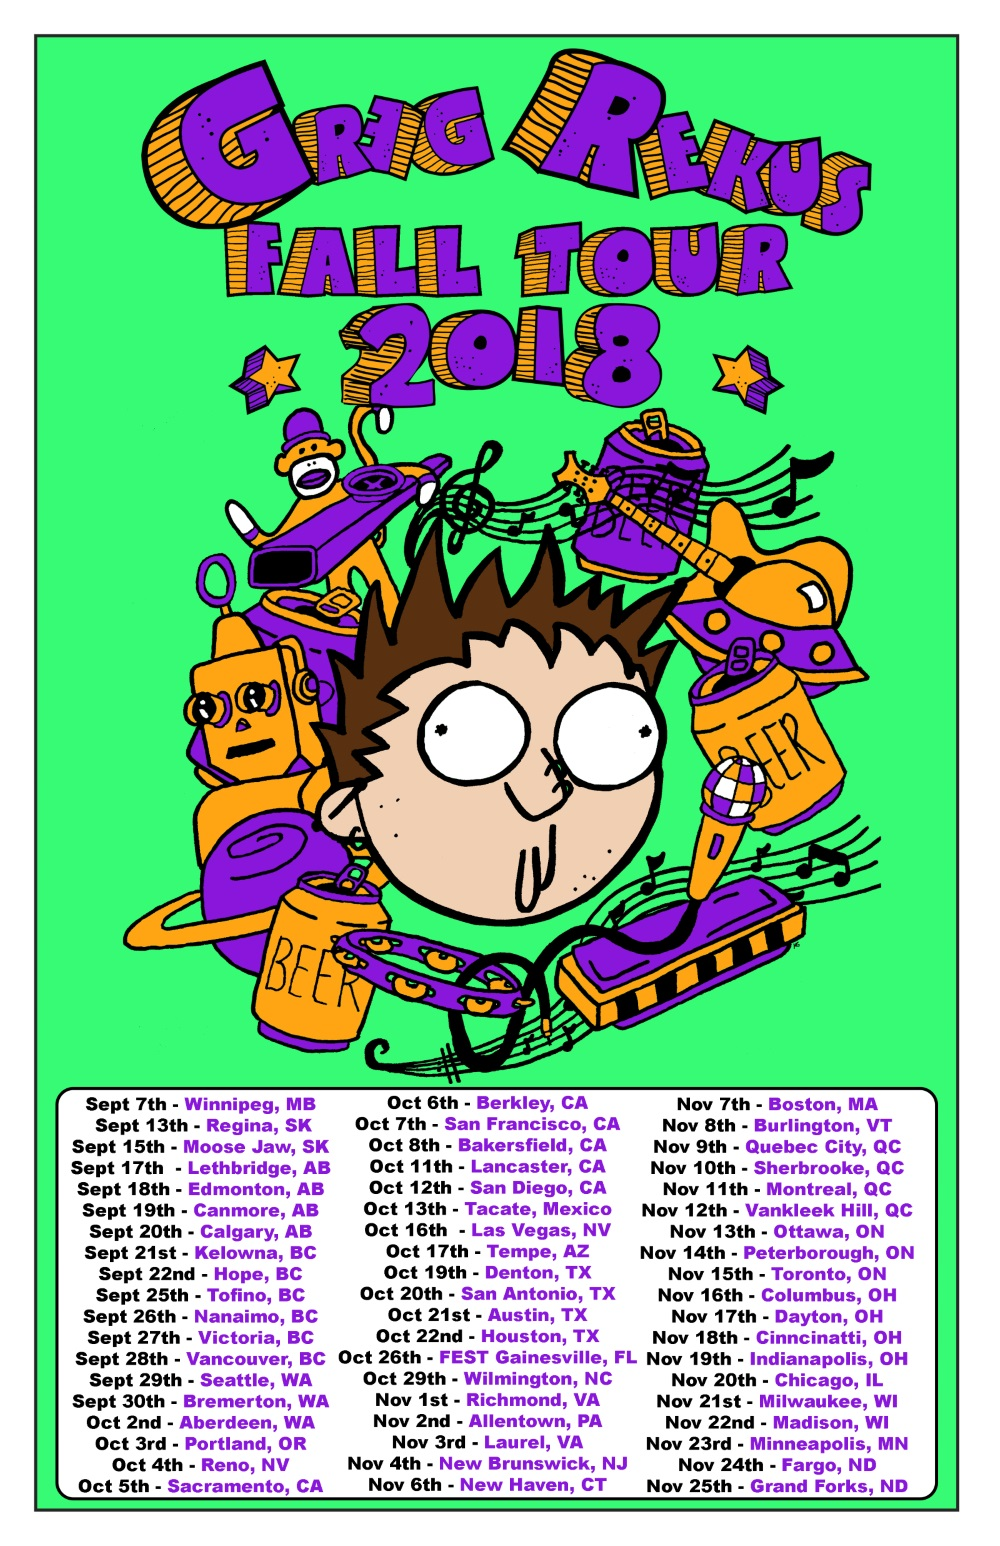 Greg Fall tour